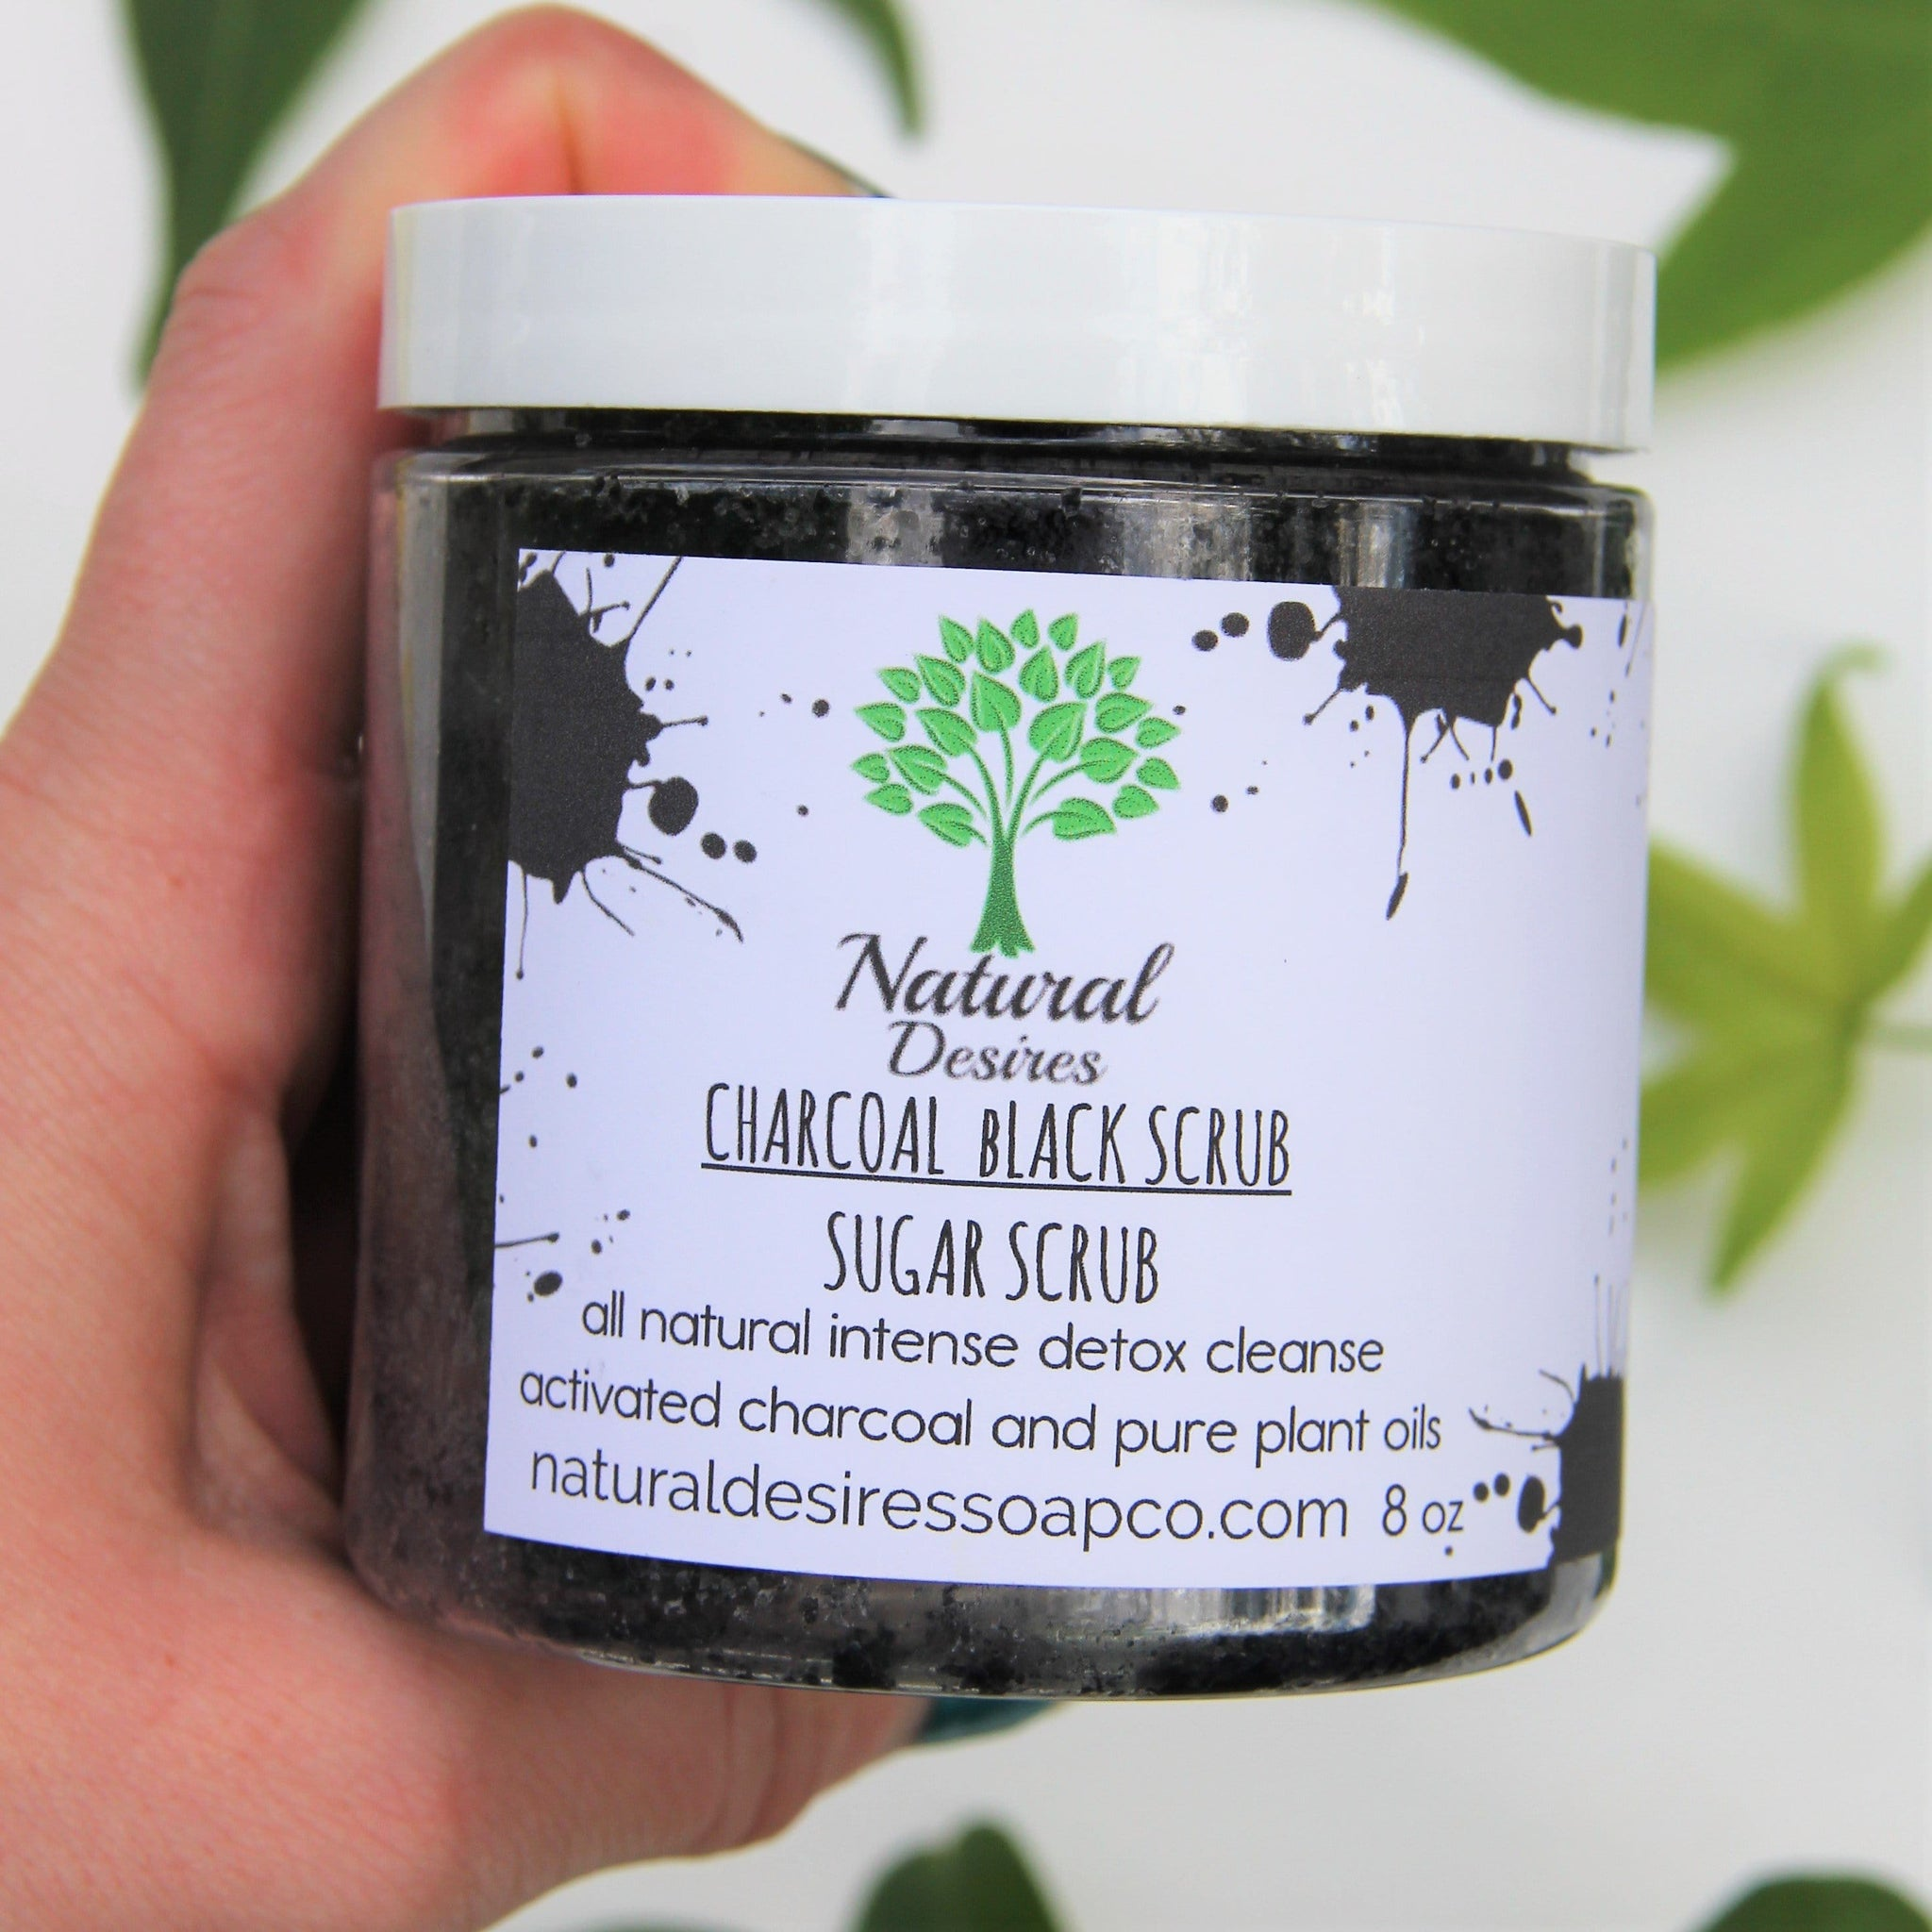 Charcoal Black Scrub| Best Charcoal Face Scrub| Charcoal Facial Scrub| Activated Charcoal Body Scrub| Handmade Jacksonville FL